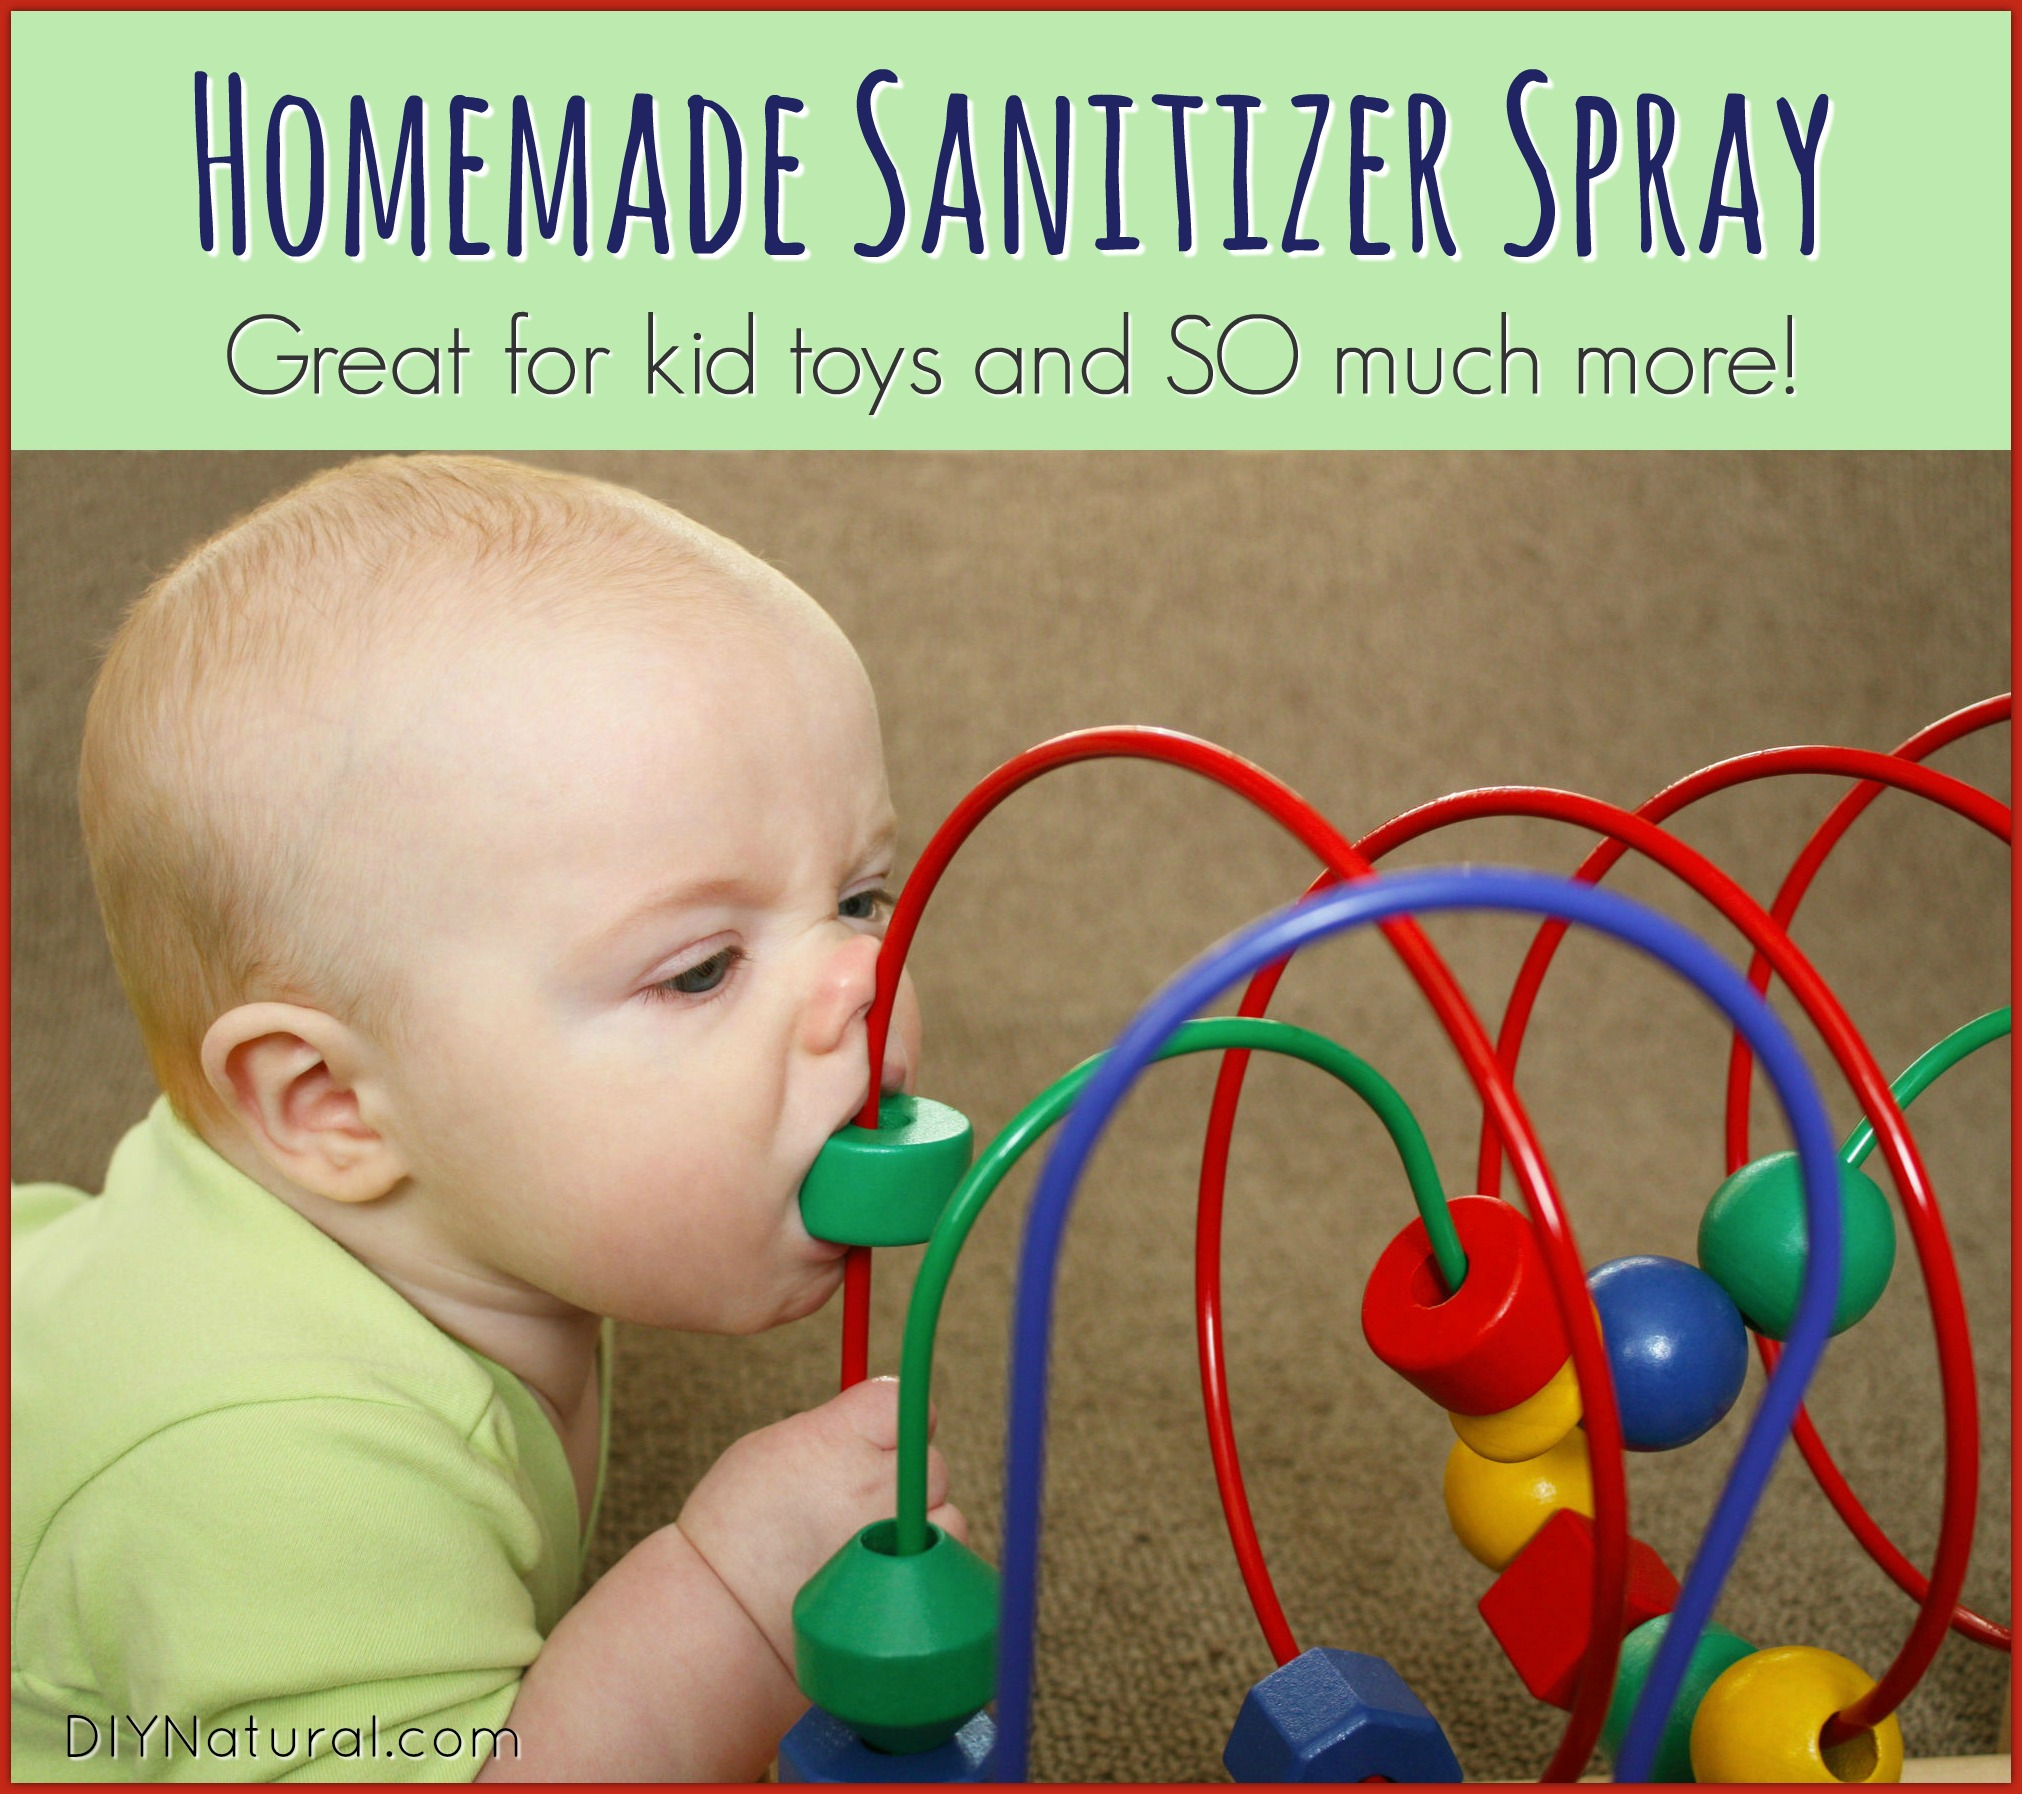 Homemade Sanitizer Spray Natural Child Toy Cleaner & More